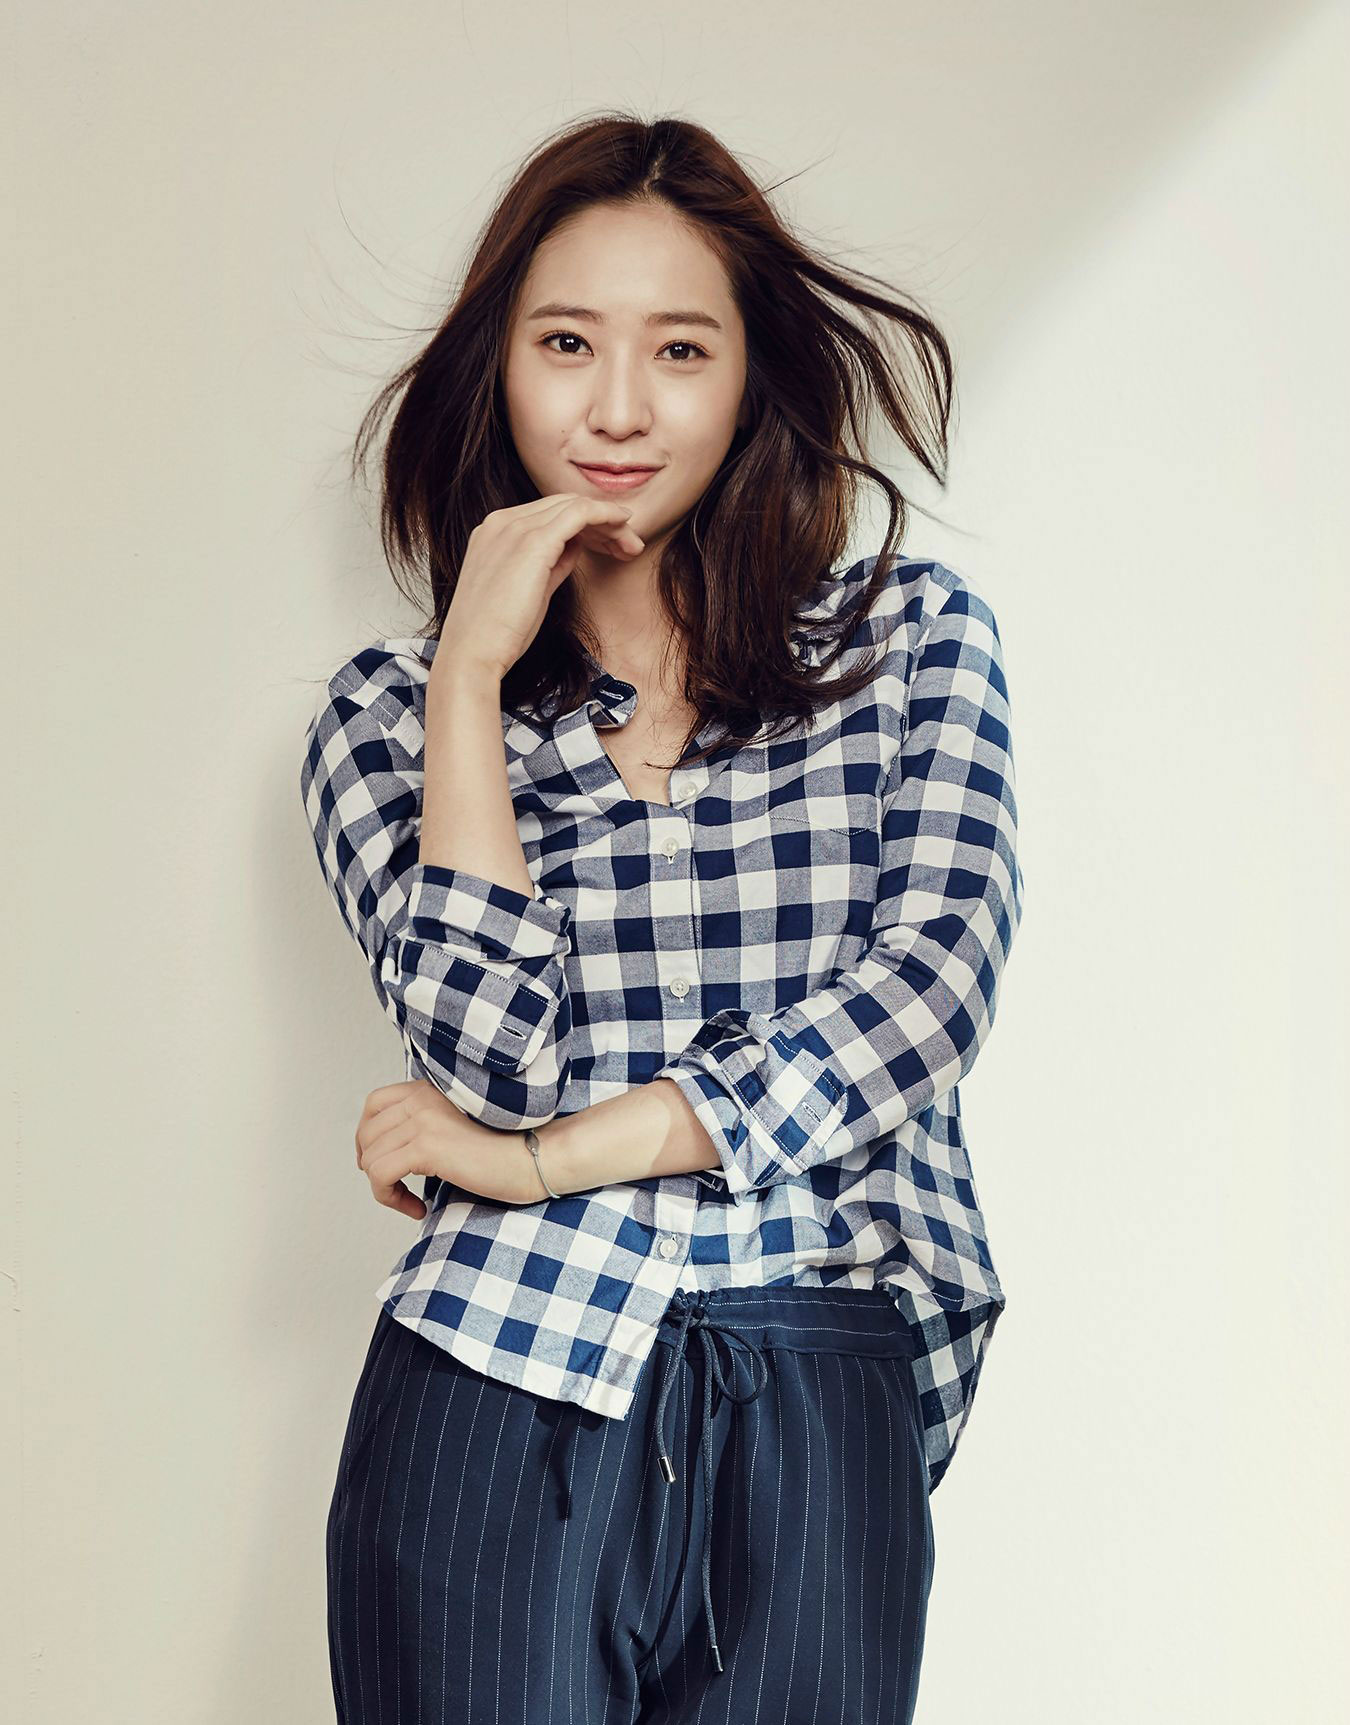 Fx Krystal Giordano fashion advertisement